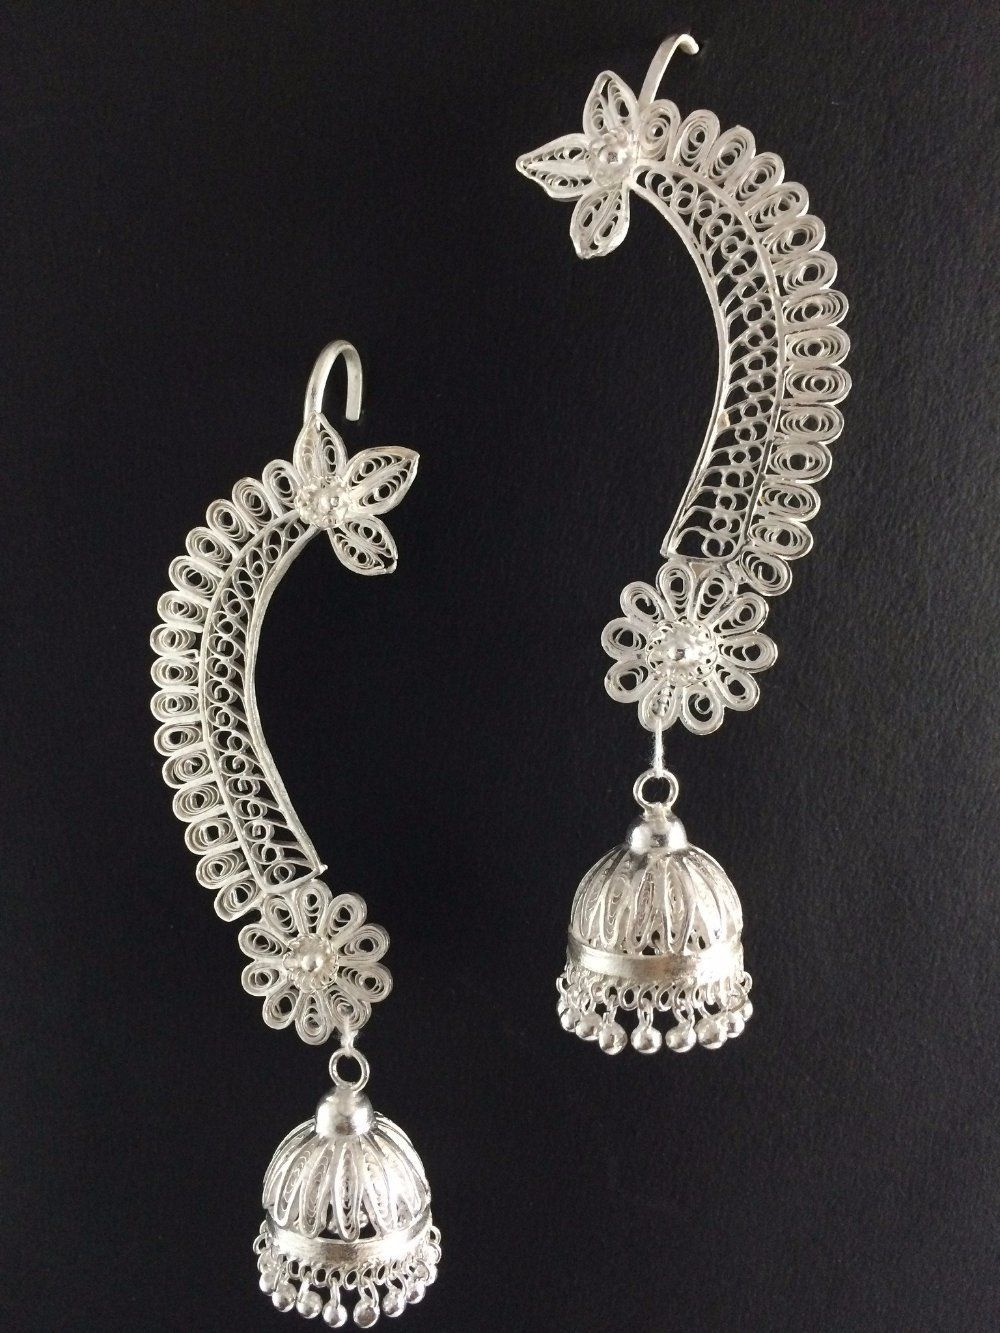 7d2c195470362 Odissi in 2019 | Küpe | Filigree Jewelry, Jewelry, Silver necklaces